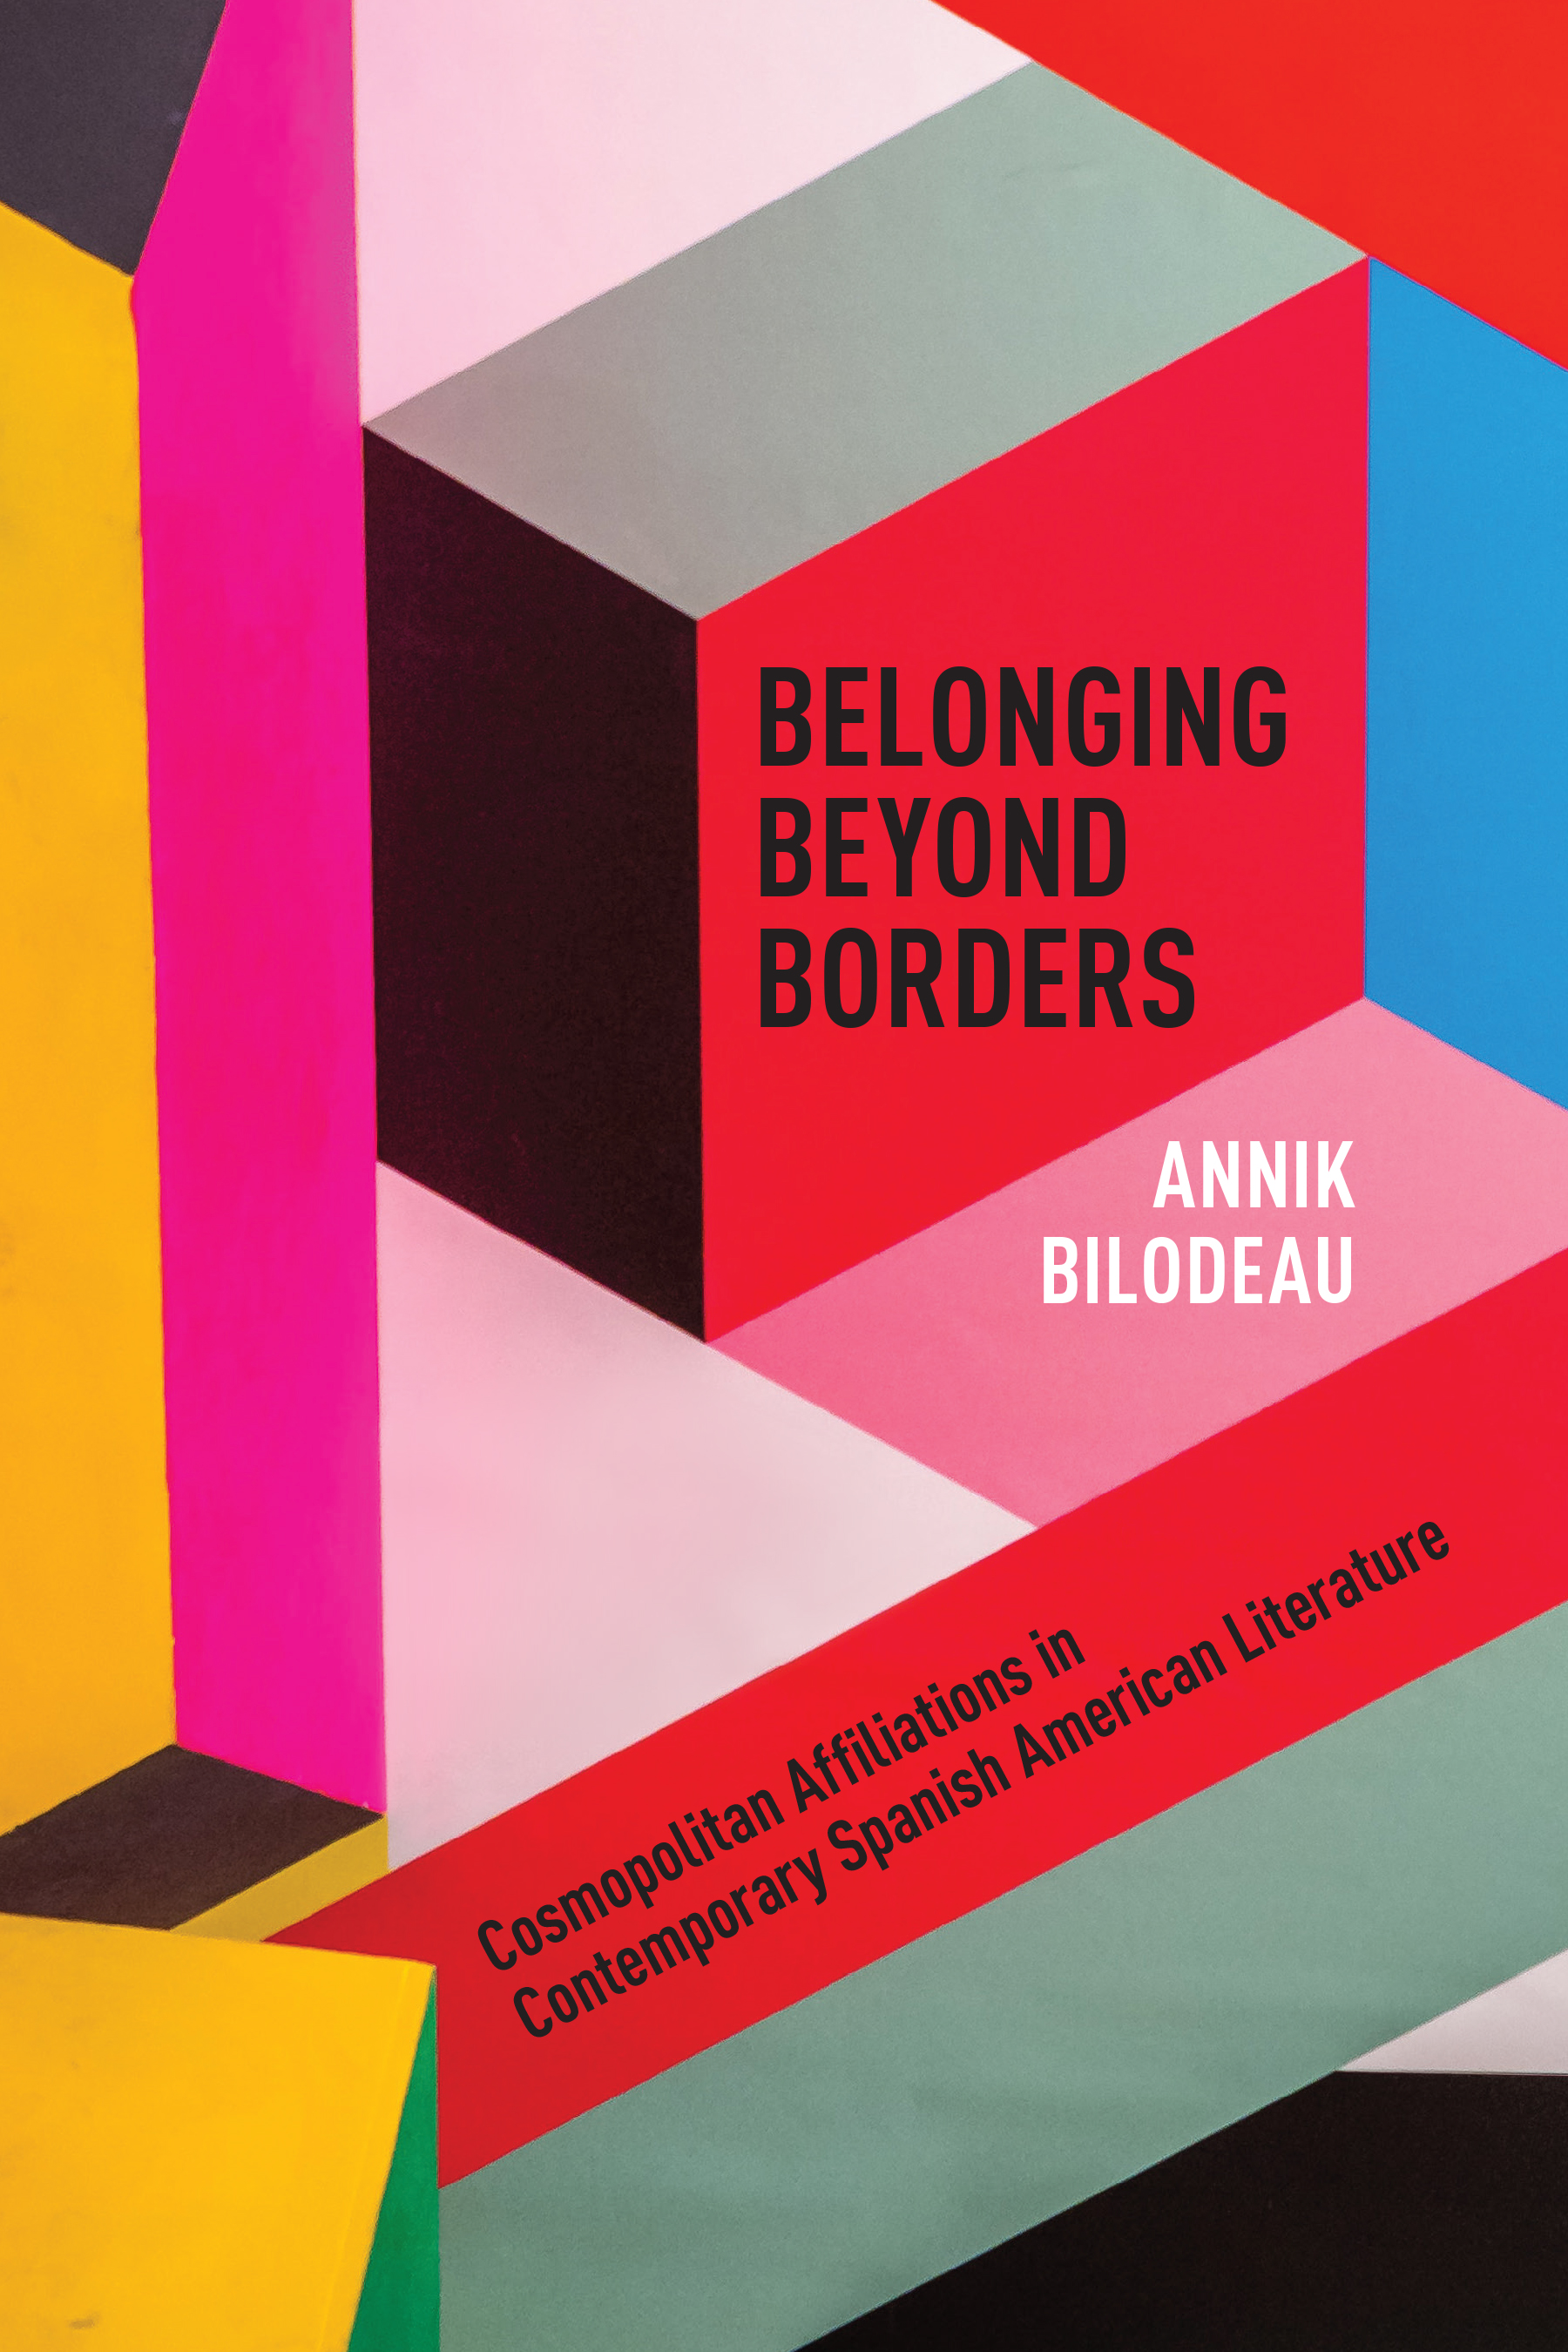 Cover Image for: Belonging Beyond Borders